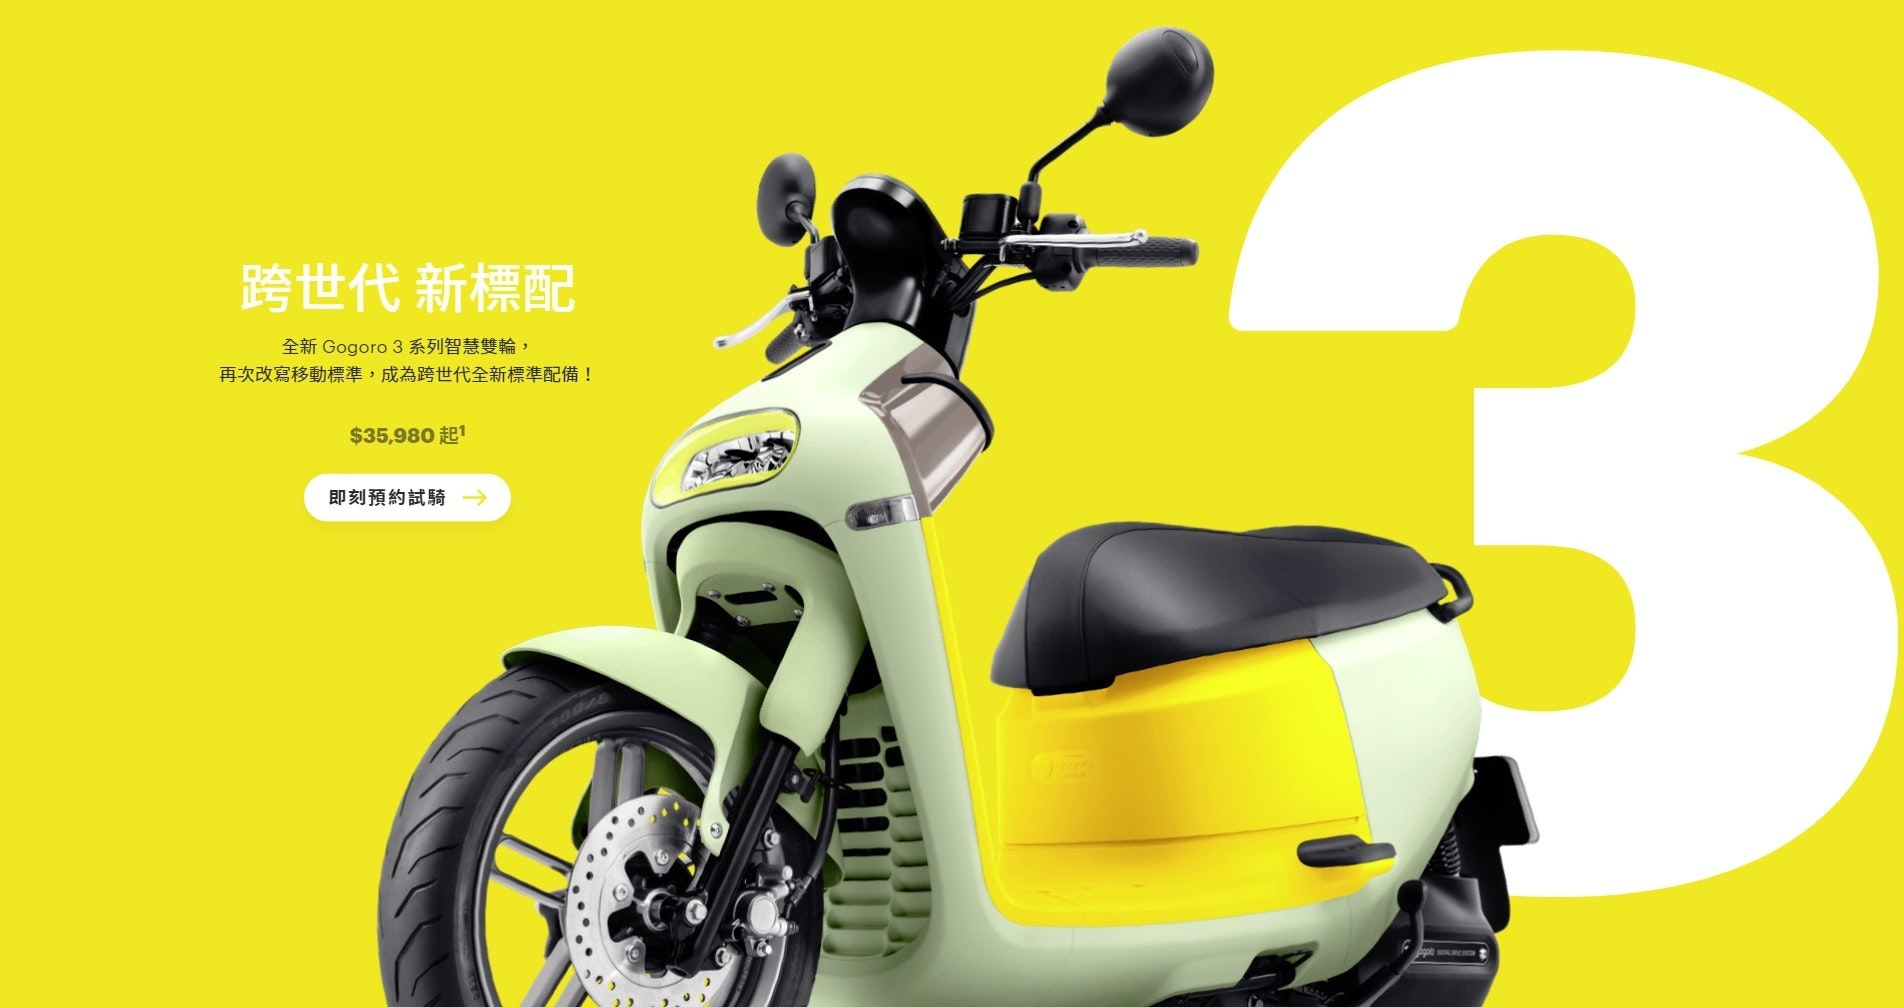 Car, Motorcycle accessories, Motor vehicle, Motorcycle, Automotive design, Product design, Vehicle, Desktop Wallpaper, Design, Product, motorcycle, Land vehicle, Vehicle, Motor vehicle, Yellow, Automotive design, Car, Motorcycle, Mode of transport, Automotive tire, Automotive wheel system